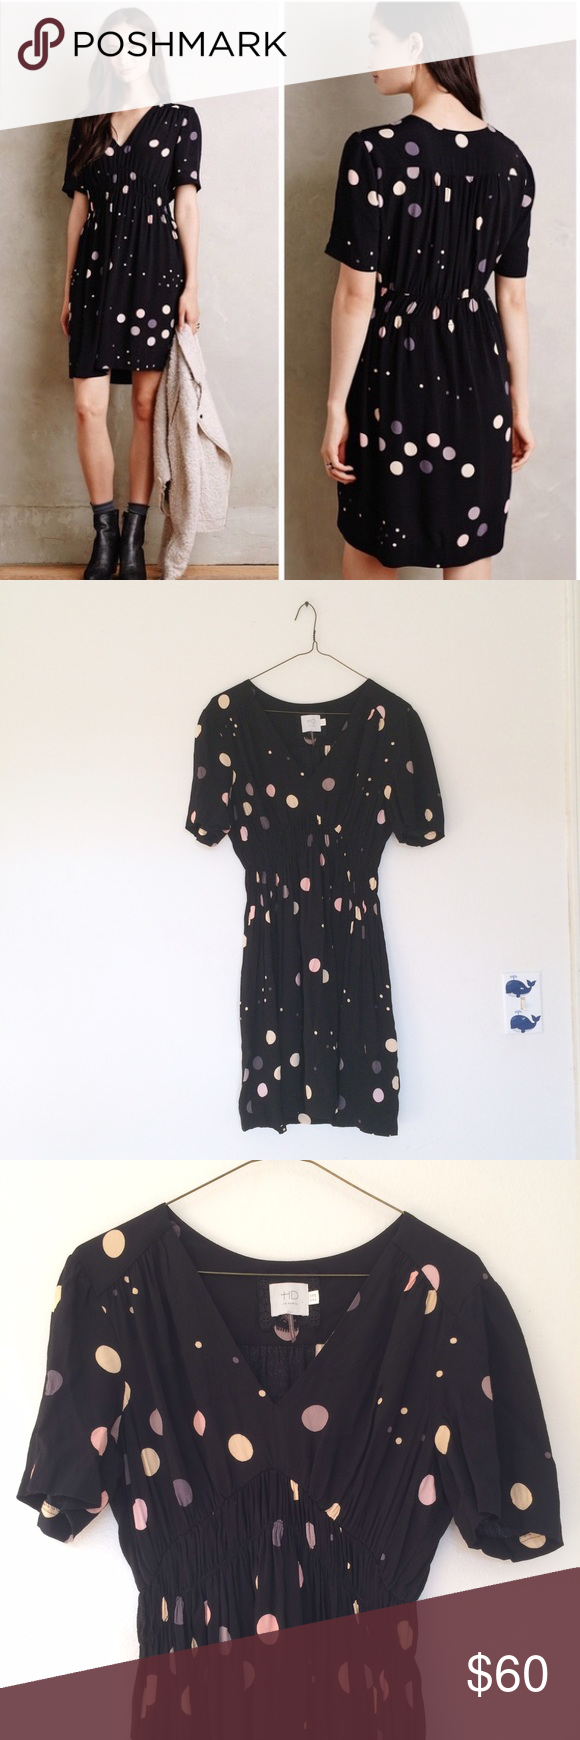 Anthropologie HD in Paris Polka Dot Dress Super cute polkadot black dress with a stretch waist. In excellent preowned condition! Anthropologie Dresses